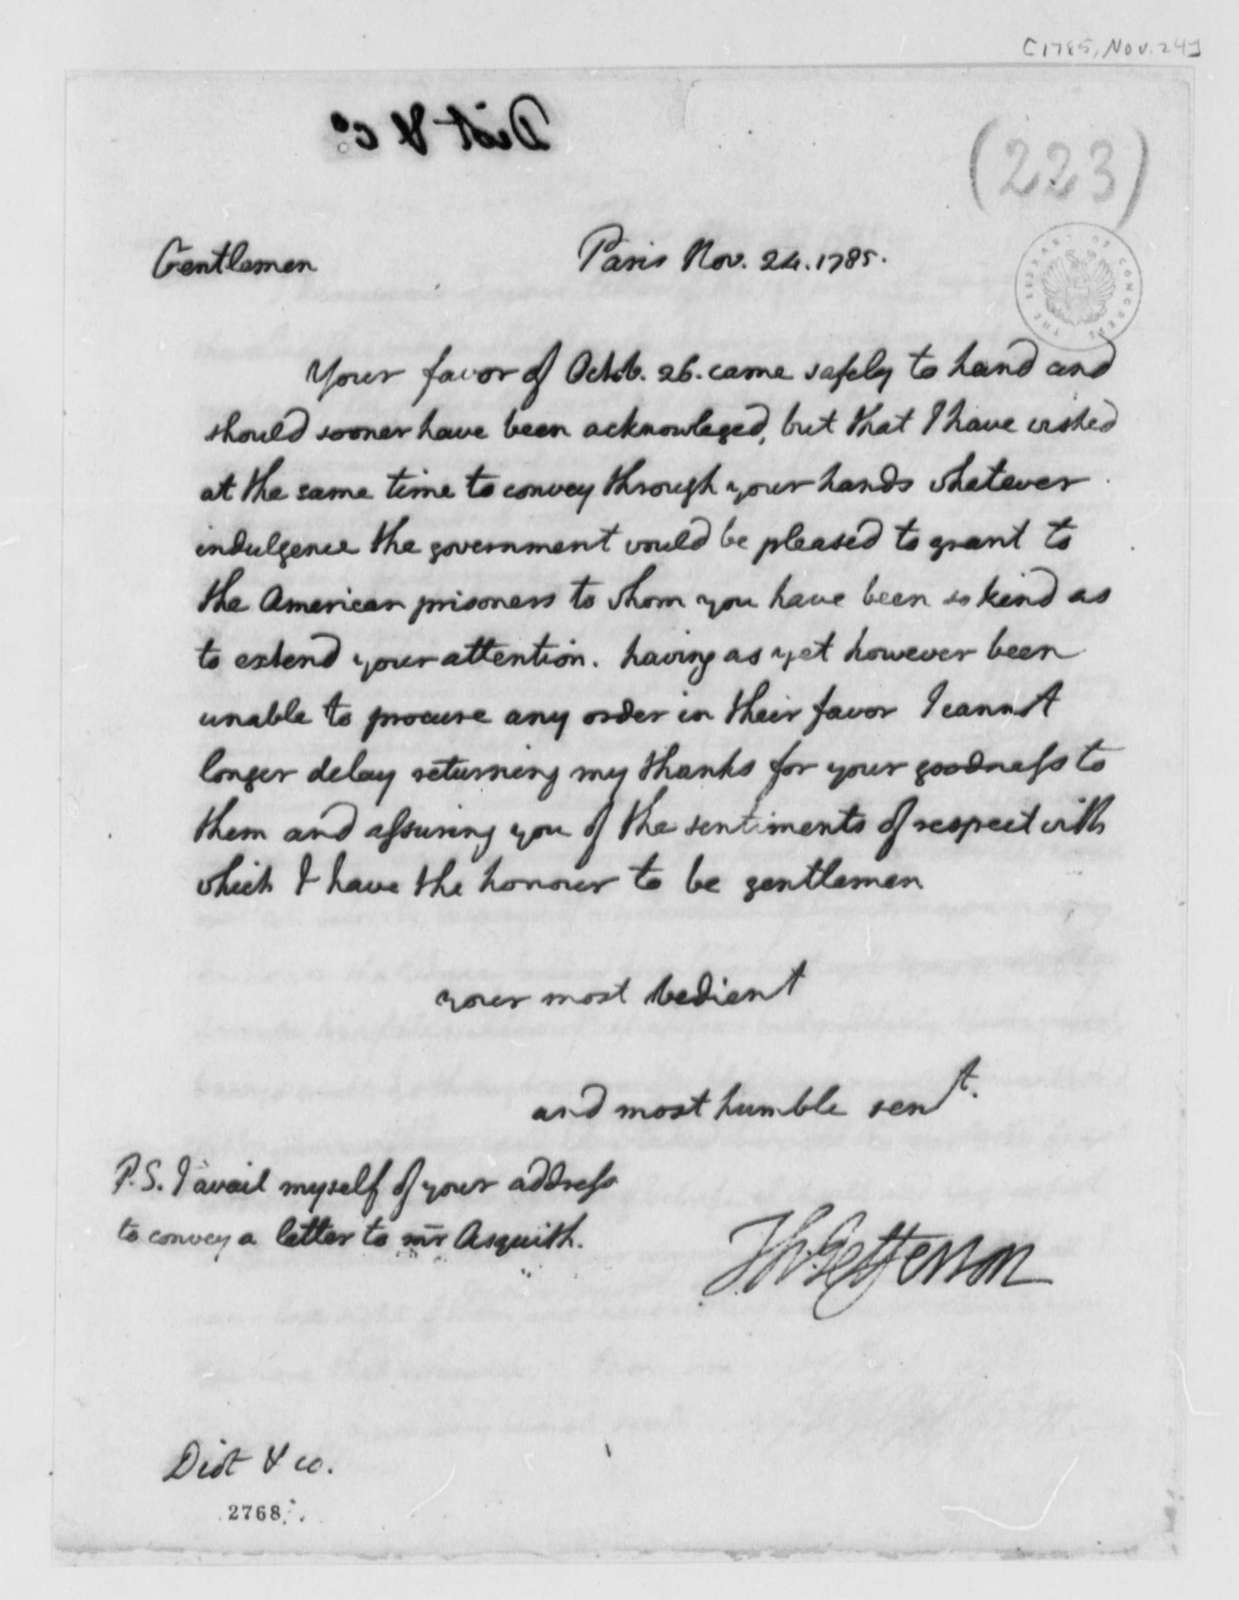 Thomas Jefferson to Jean Diot & Company, November 24, 1785, Lister Asquith's Maritime Law Case; William & Catherine (ship)